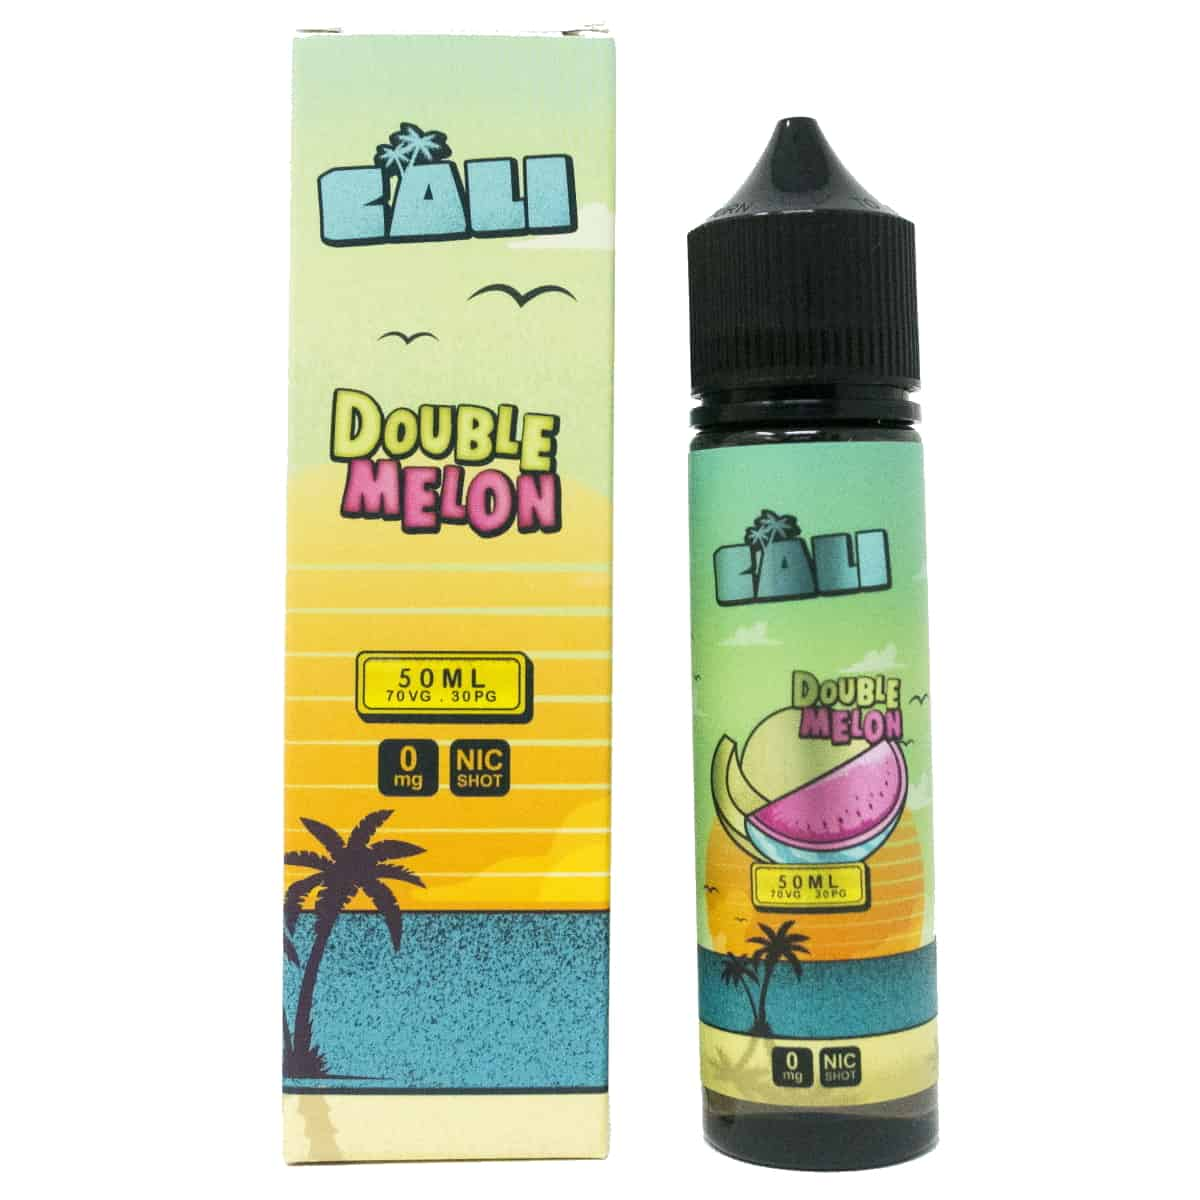 Double Melon Cali Shortfill 50ml